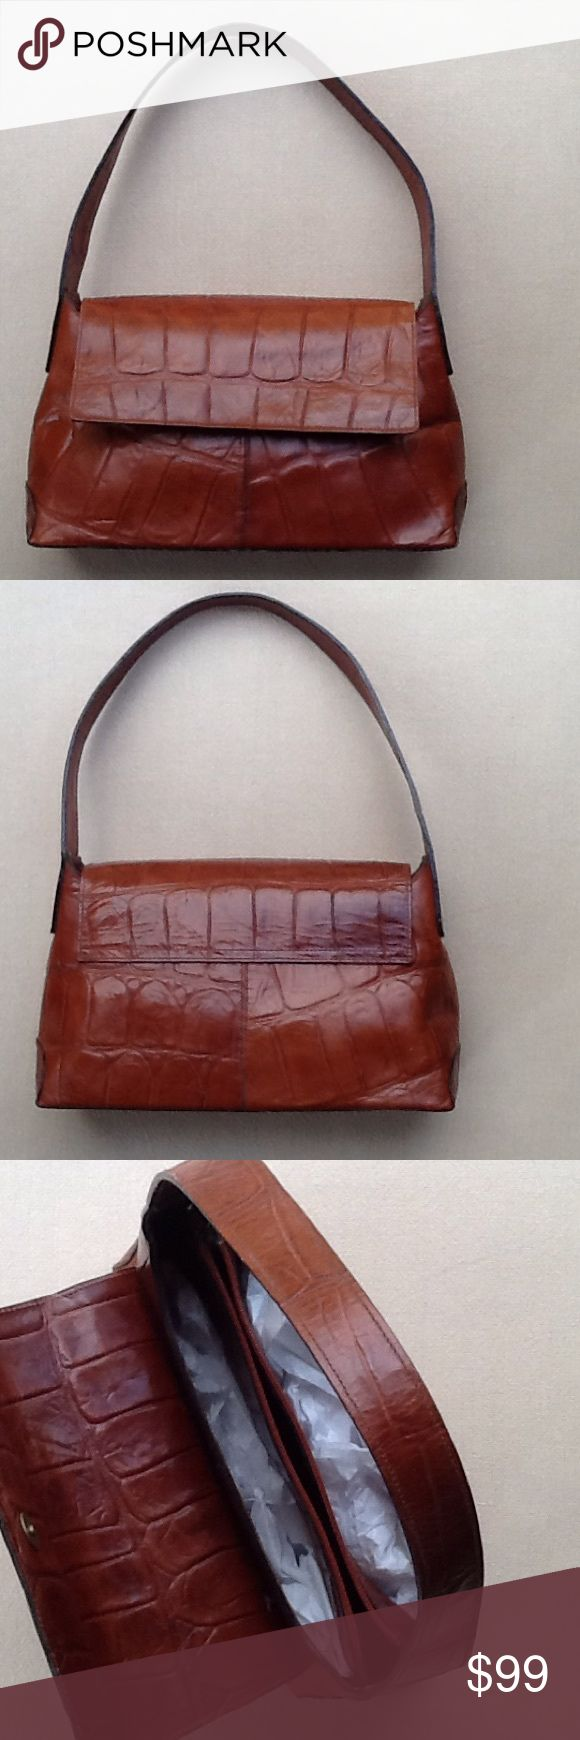 JOAN & DAVID POCKETBOOK This beautiful Joan & David pocketbook is BRAND NEW, and has never been used. The pocket book is a perfect shade of golden brown with a reptile embossed print. The front has a snap that closes on the outside. The inside has two compartments and a third zipper compartment in the middle. The dimensions are 8 inches high, 12 inches wide and 4 inches across the bottom.A medium sized handle makes it perfect for carrying over your shoulder or hanging on to with the hand…